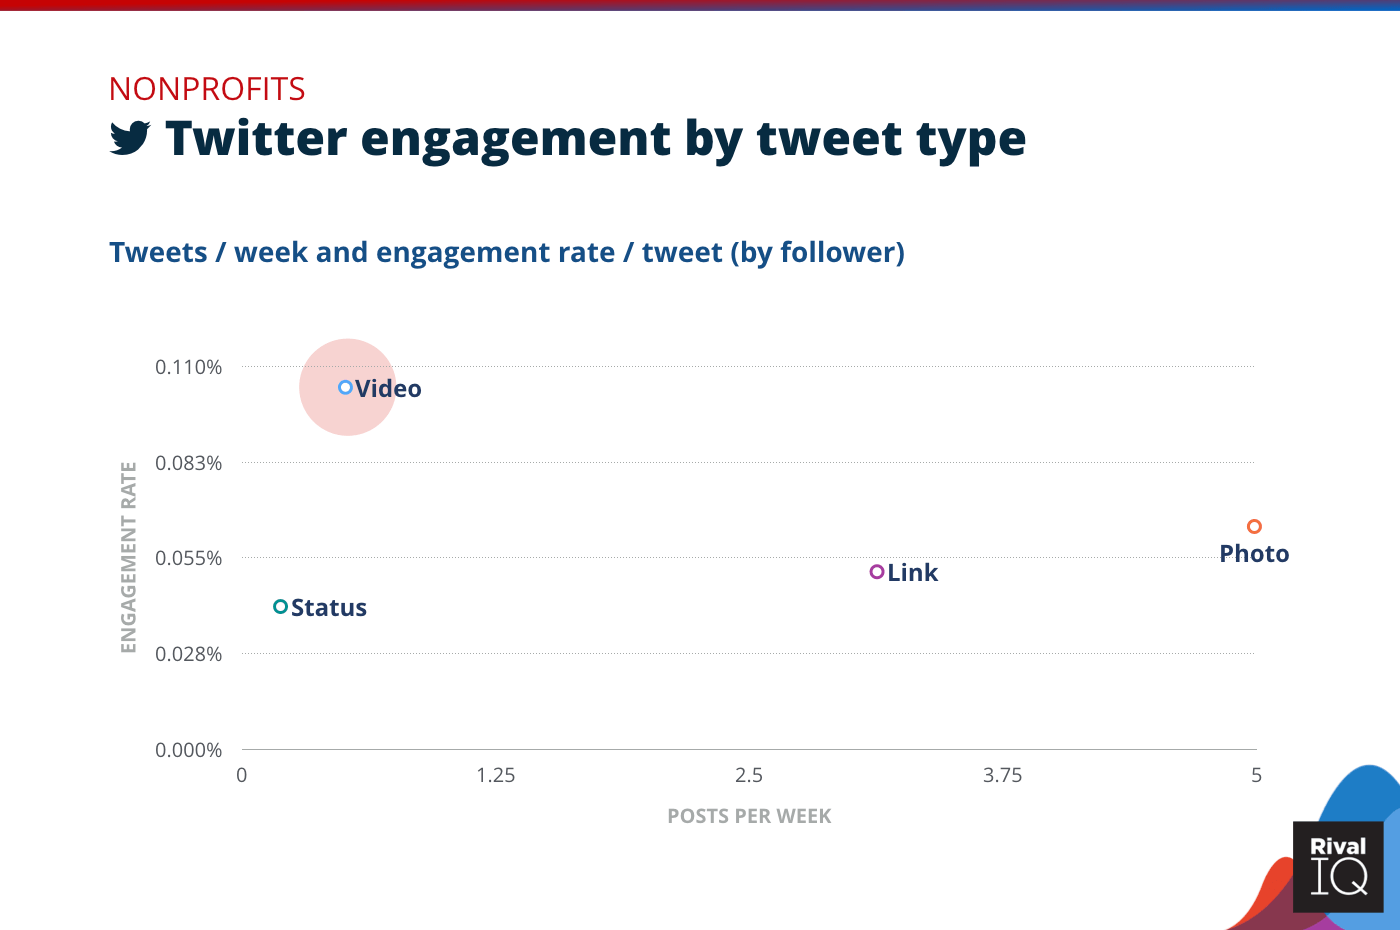 Chart of Twitter posts per week and engagement rate by tweet type, Nonprofits